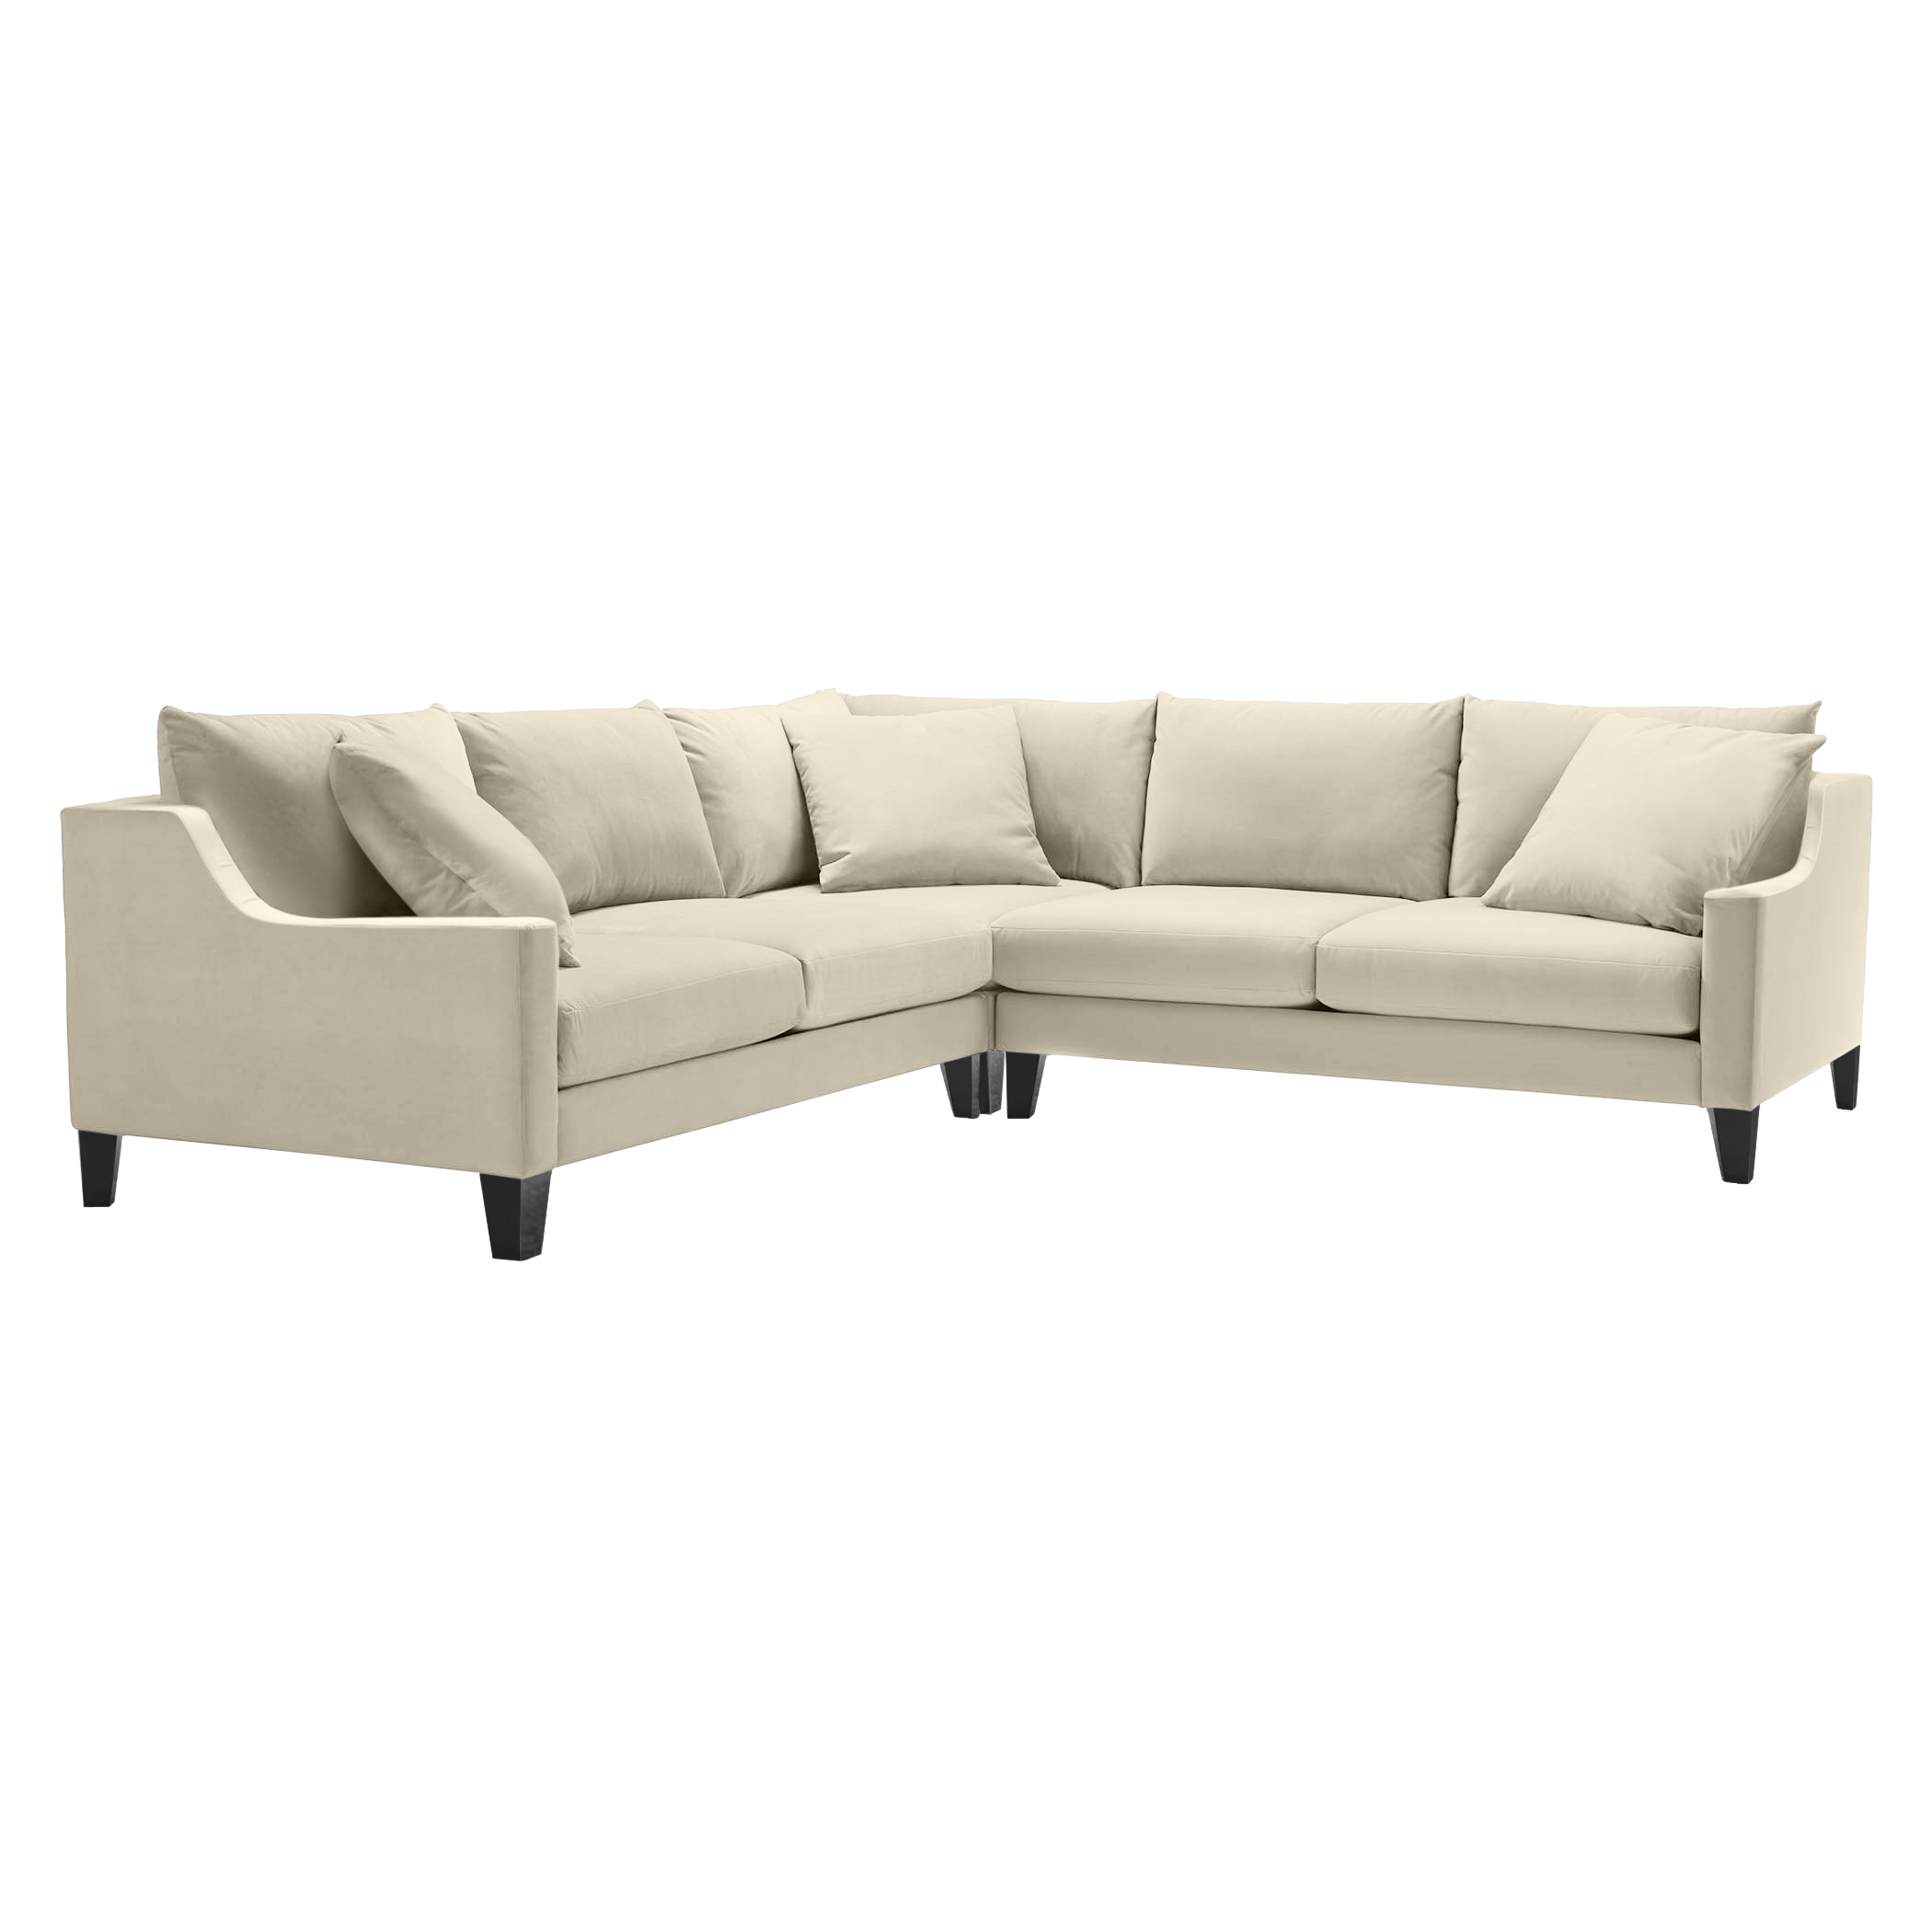 Details 3 PC Slope Arm Sectional